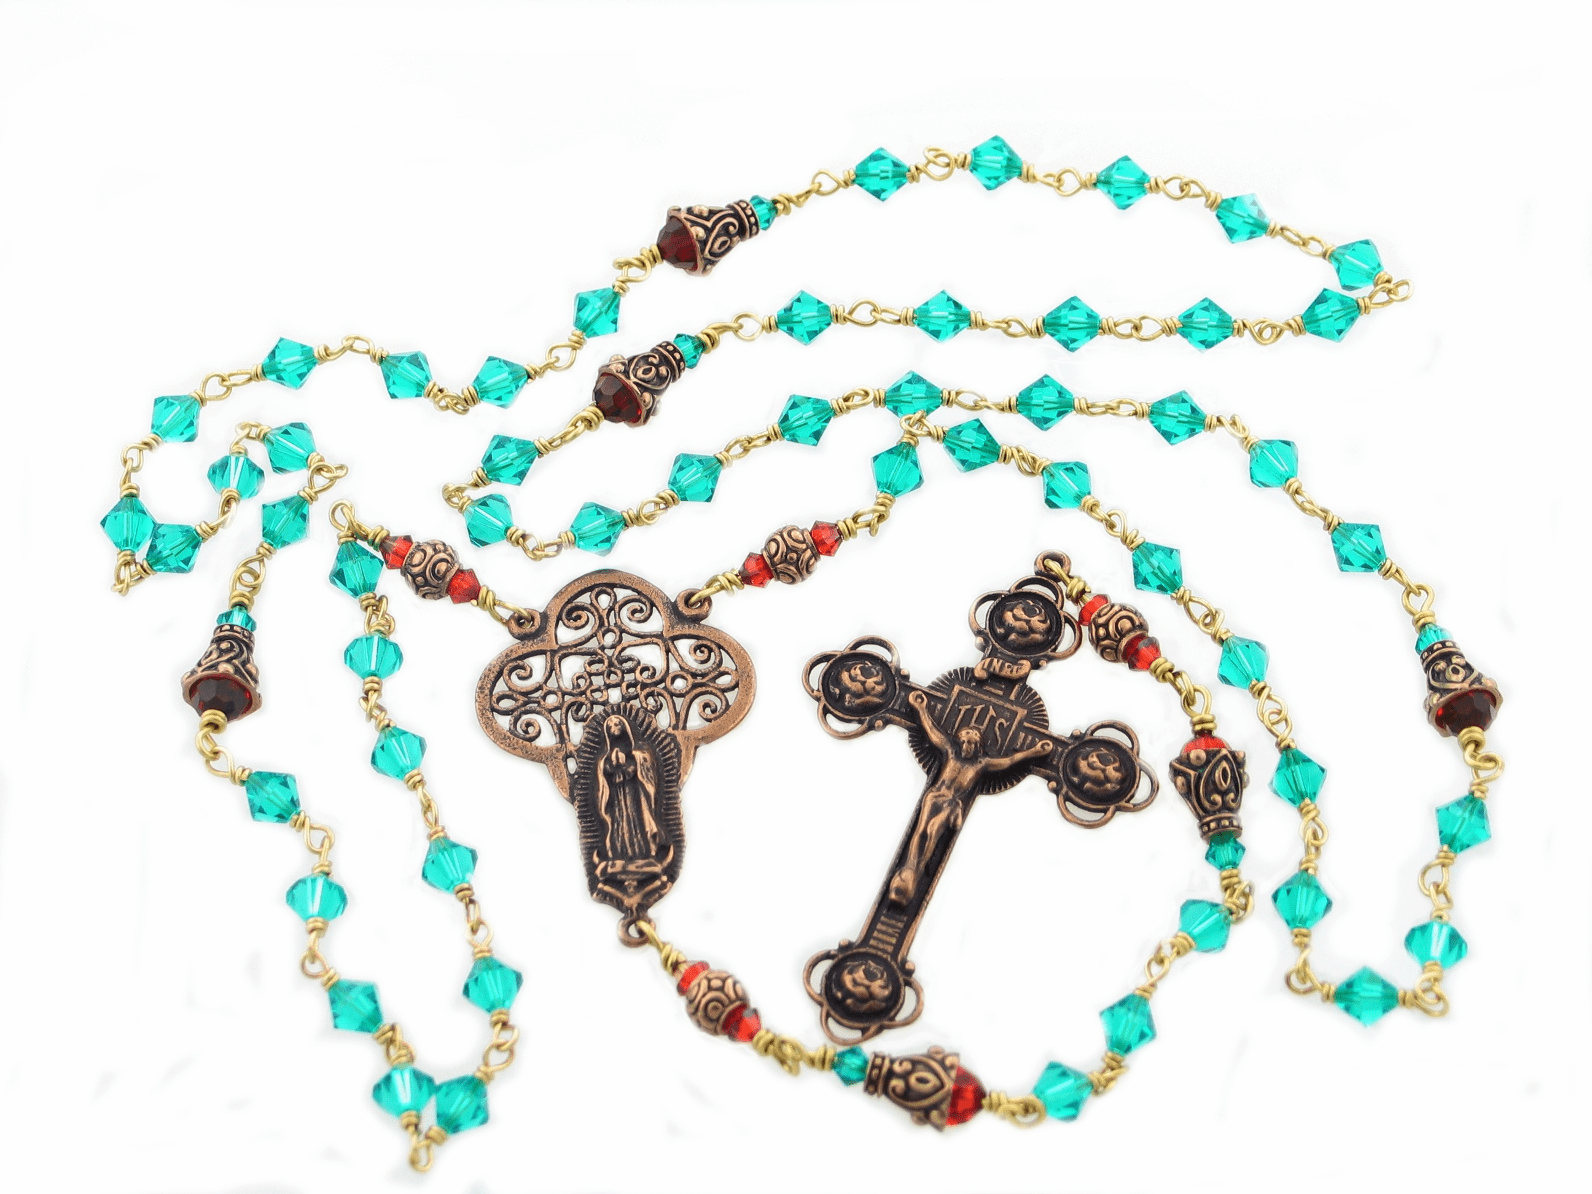 Swarovski Crystal Our Lady of Guadalupe Bronze Wire-Wrapped Rosary by Heavenly Divine